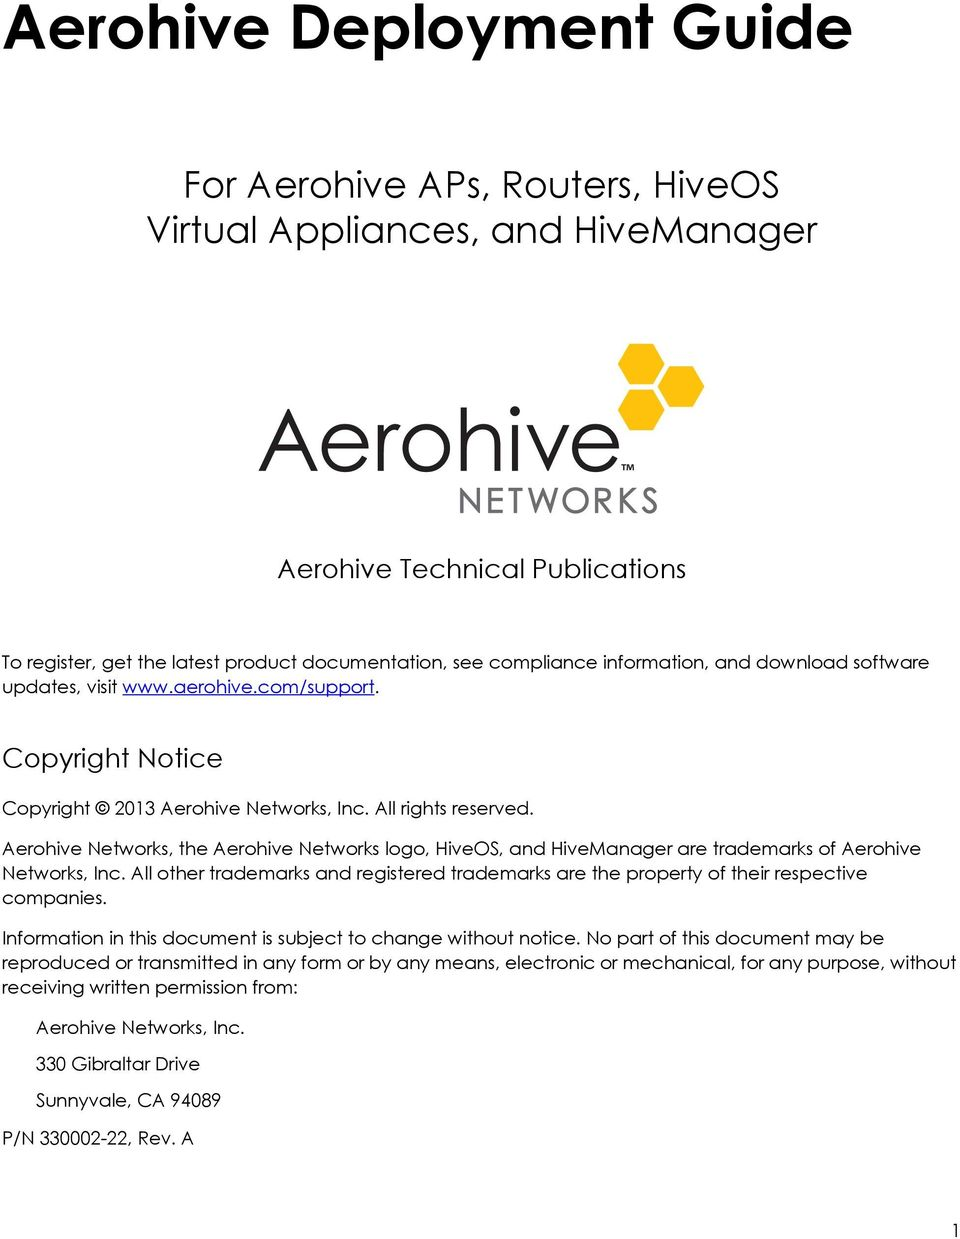 Aerohive Networks, the Aerohive Networks logo, HiveOS, and HiveManager are trademarks of Aerohive Networks, Inc.